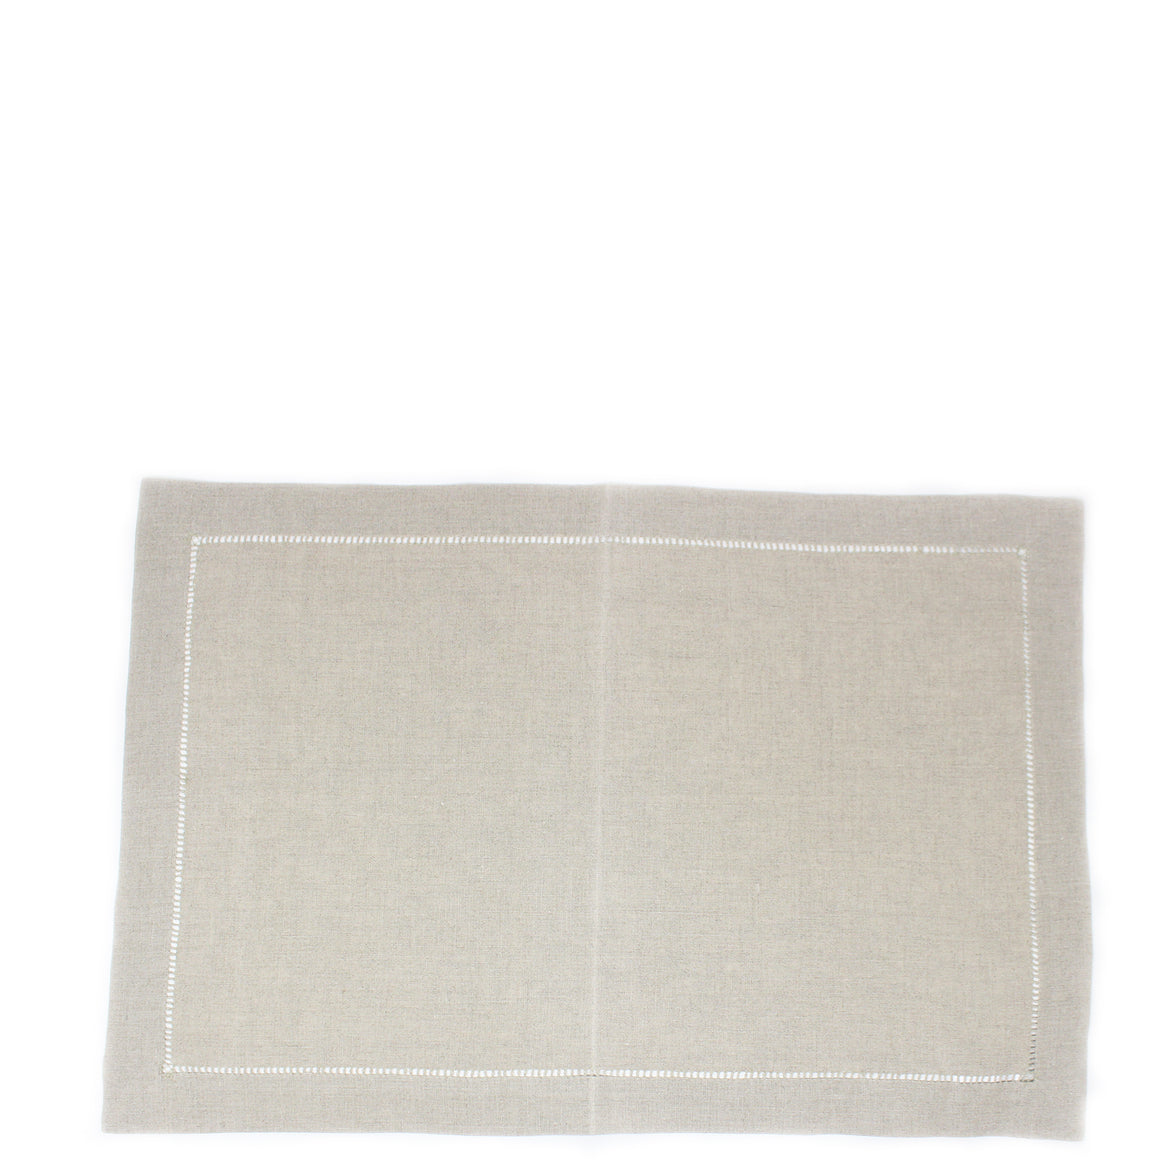 natural ladder stitch linen placemat